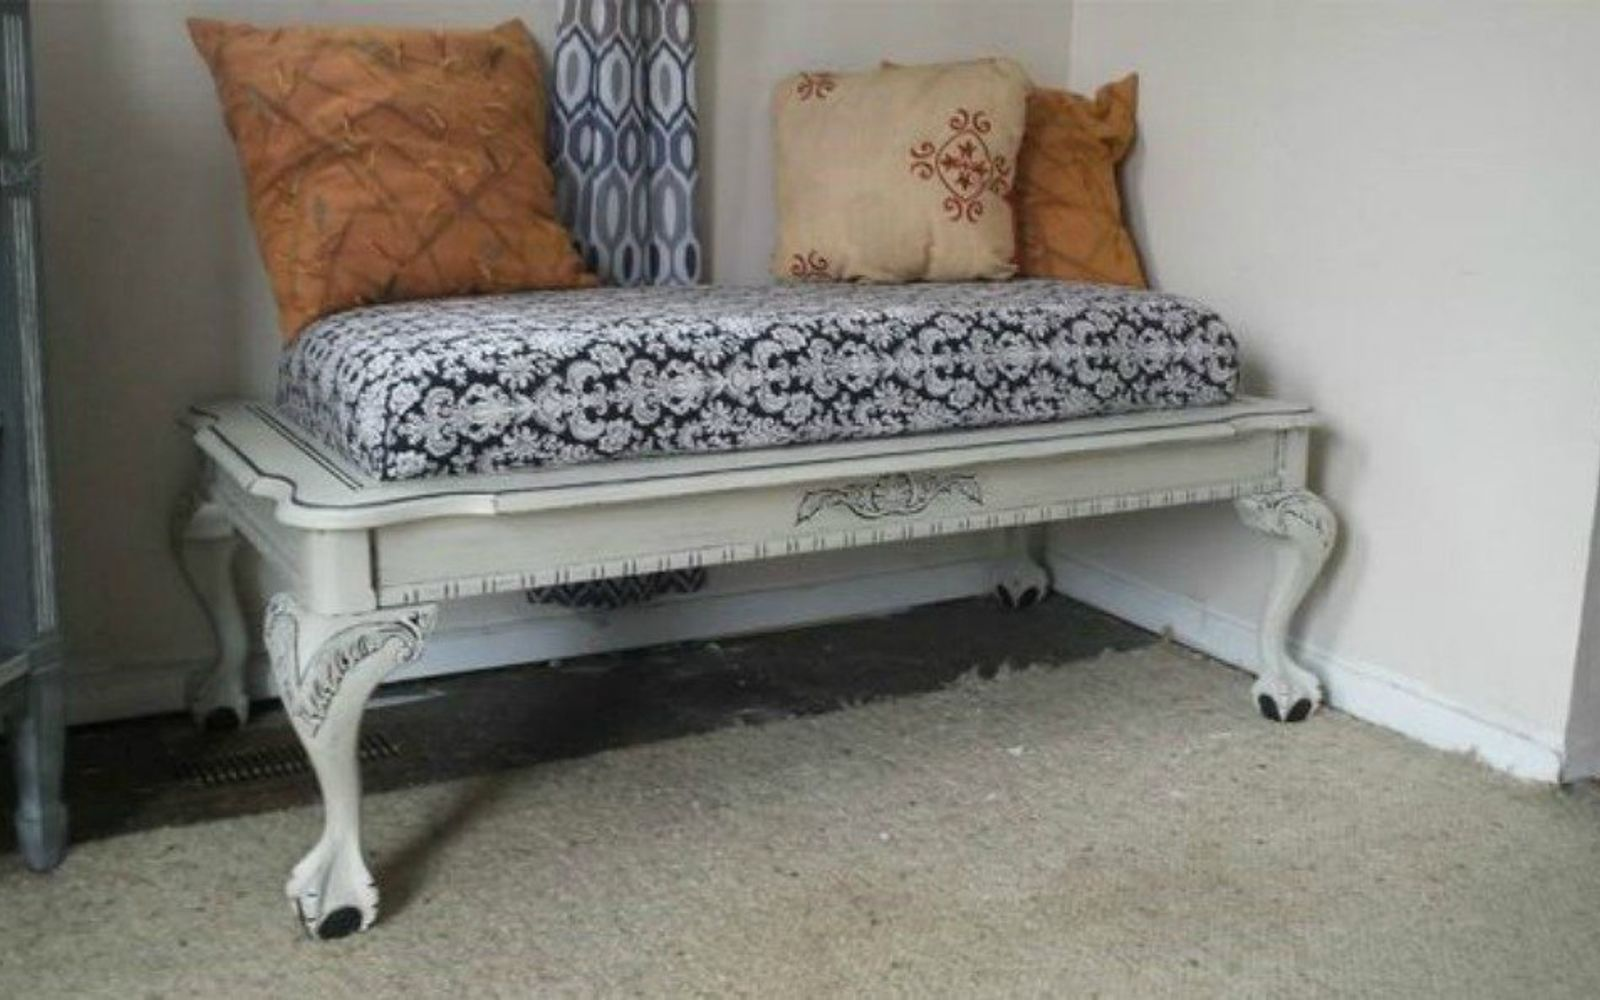 s 10 surprising ways to turn old furniture into extra seating, painted furniture, After A cushioned and comfy bench